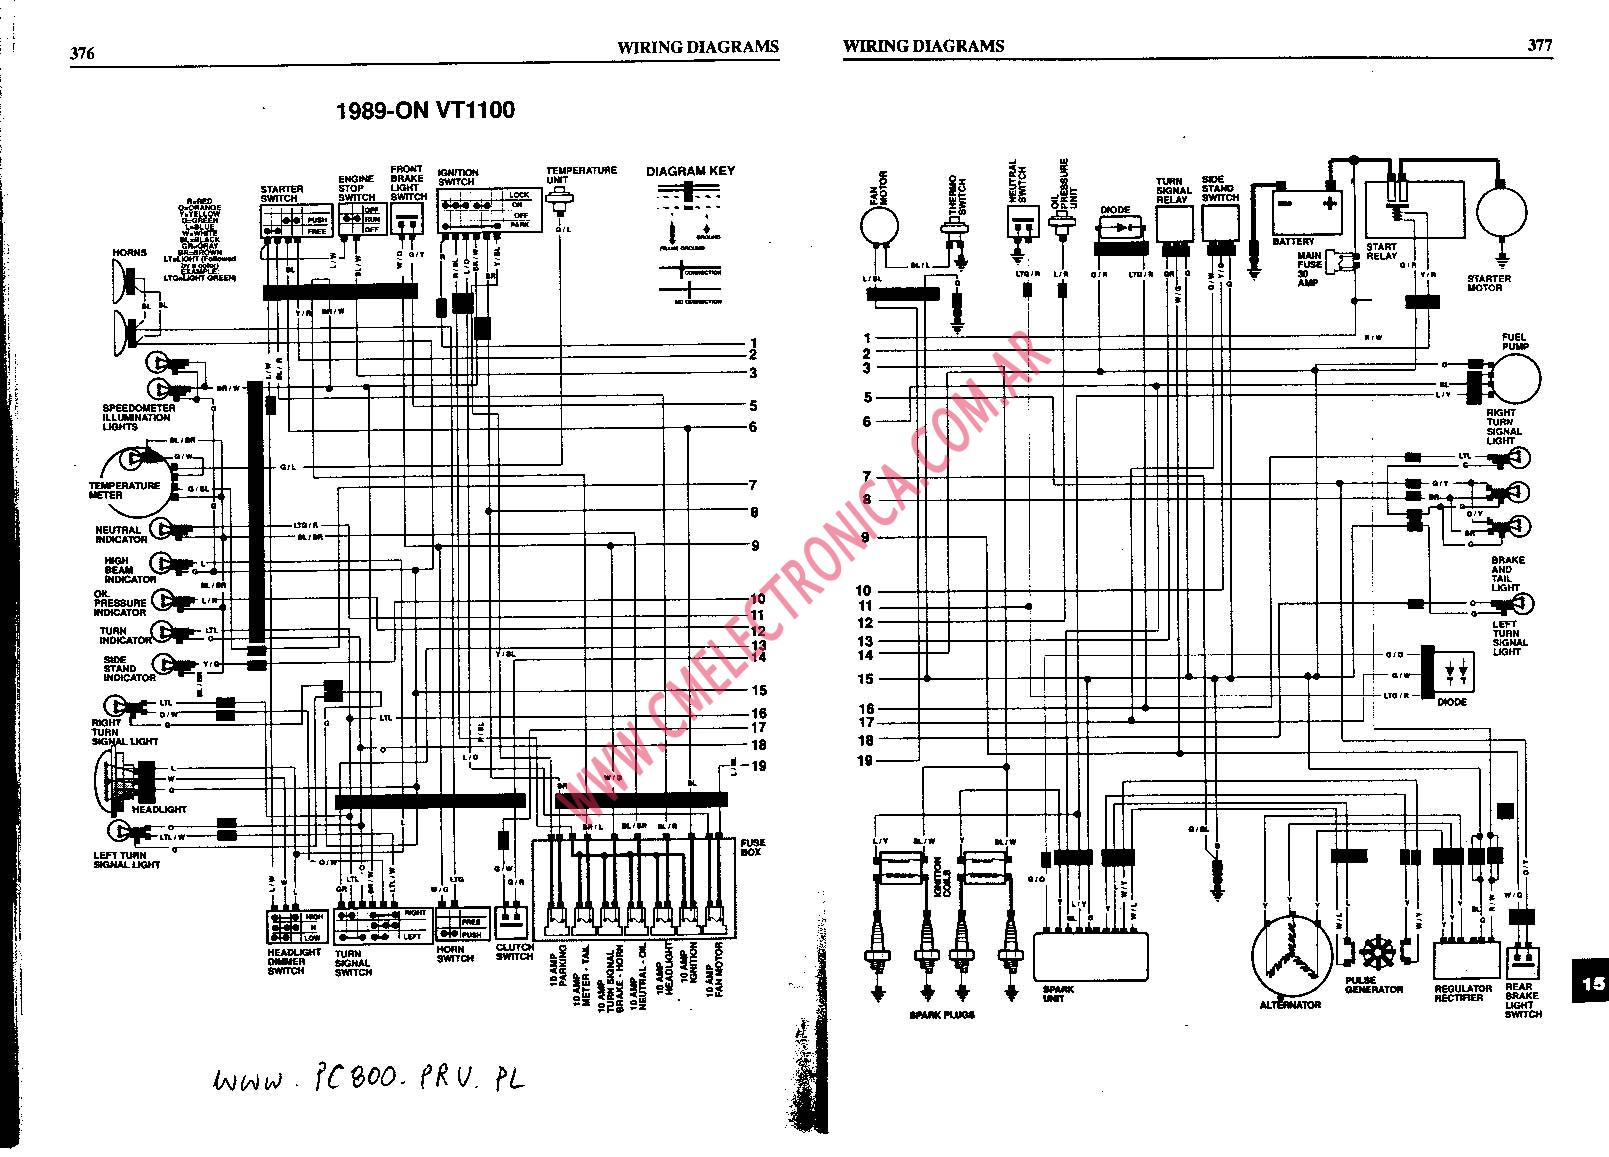 Honda 1100 Ace Wiring Diagram And Schematics 1983 Shadow 750 1996 Get Free Image About Rh Hashtravel Co 96